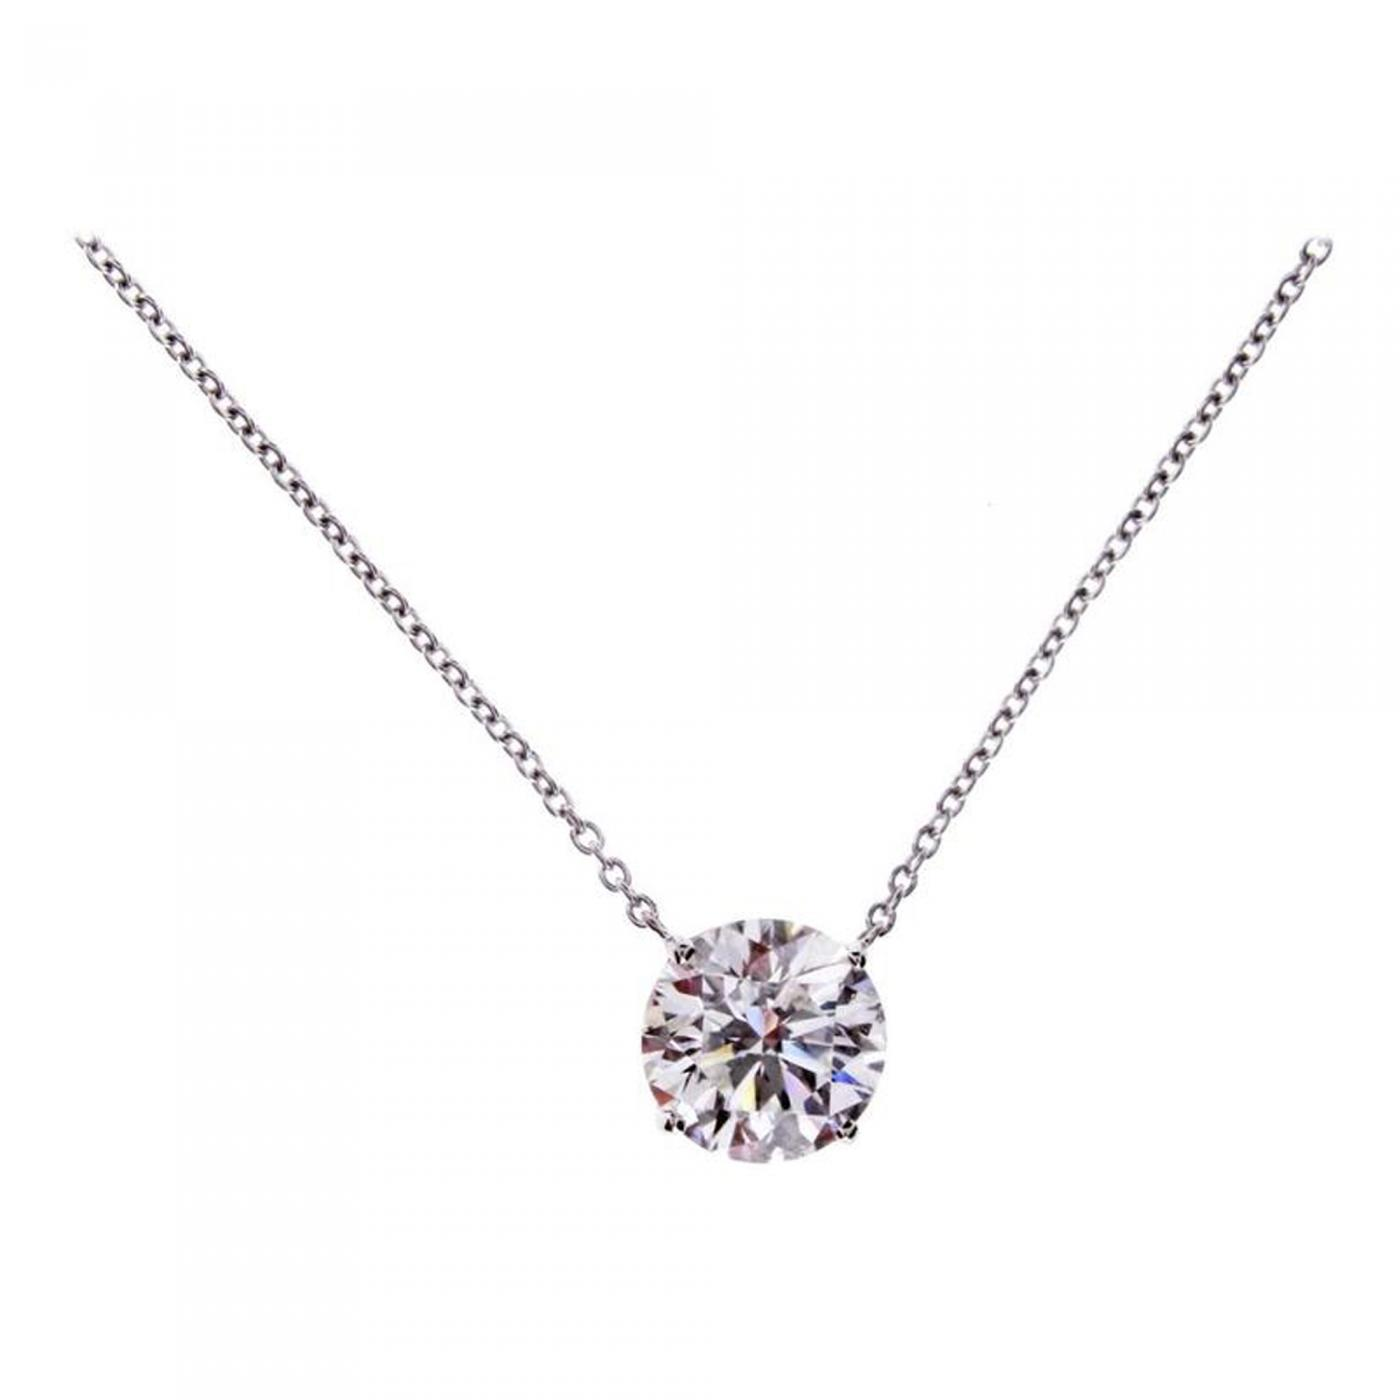 solitare necklace fascinating forever platinum round cut bling pendant white wg in nl solitaire with diamond jewelry